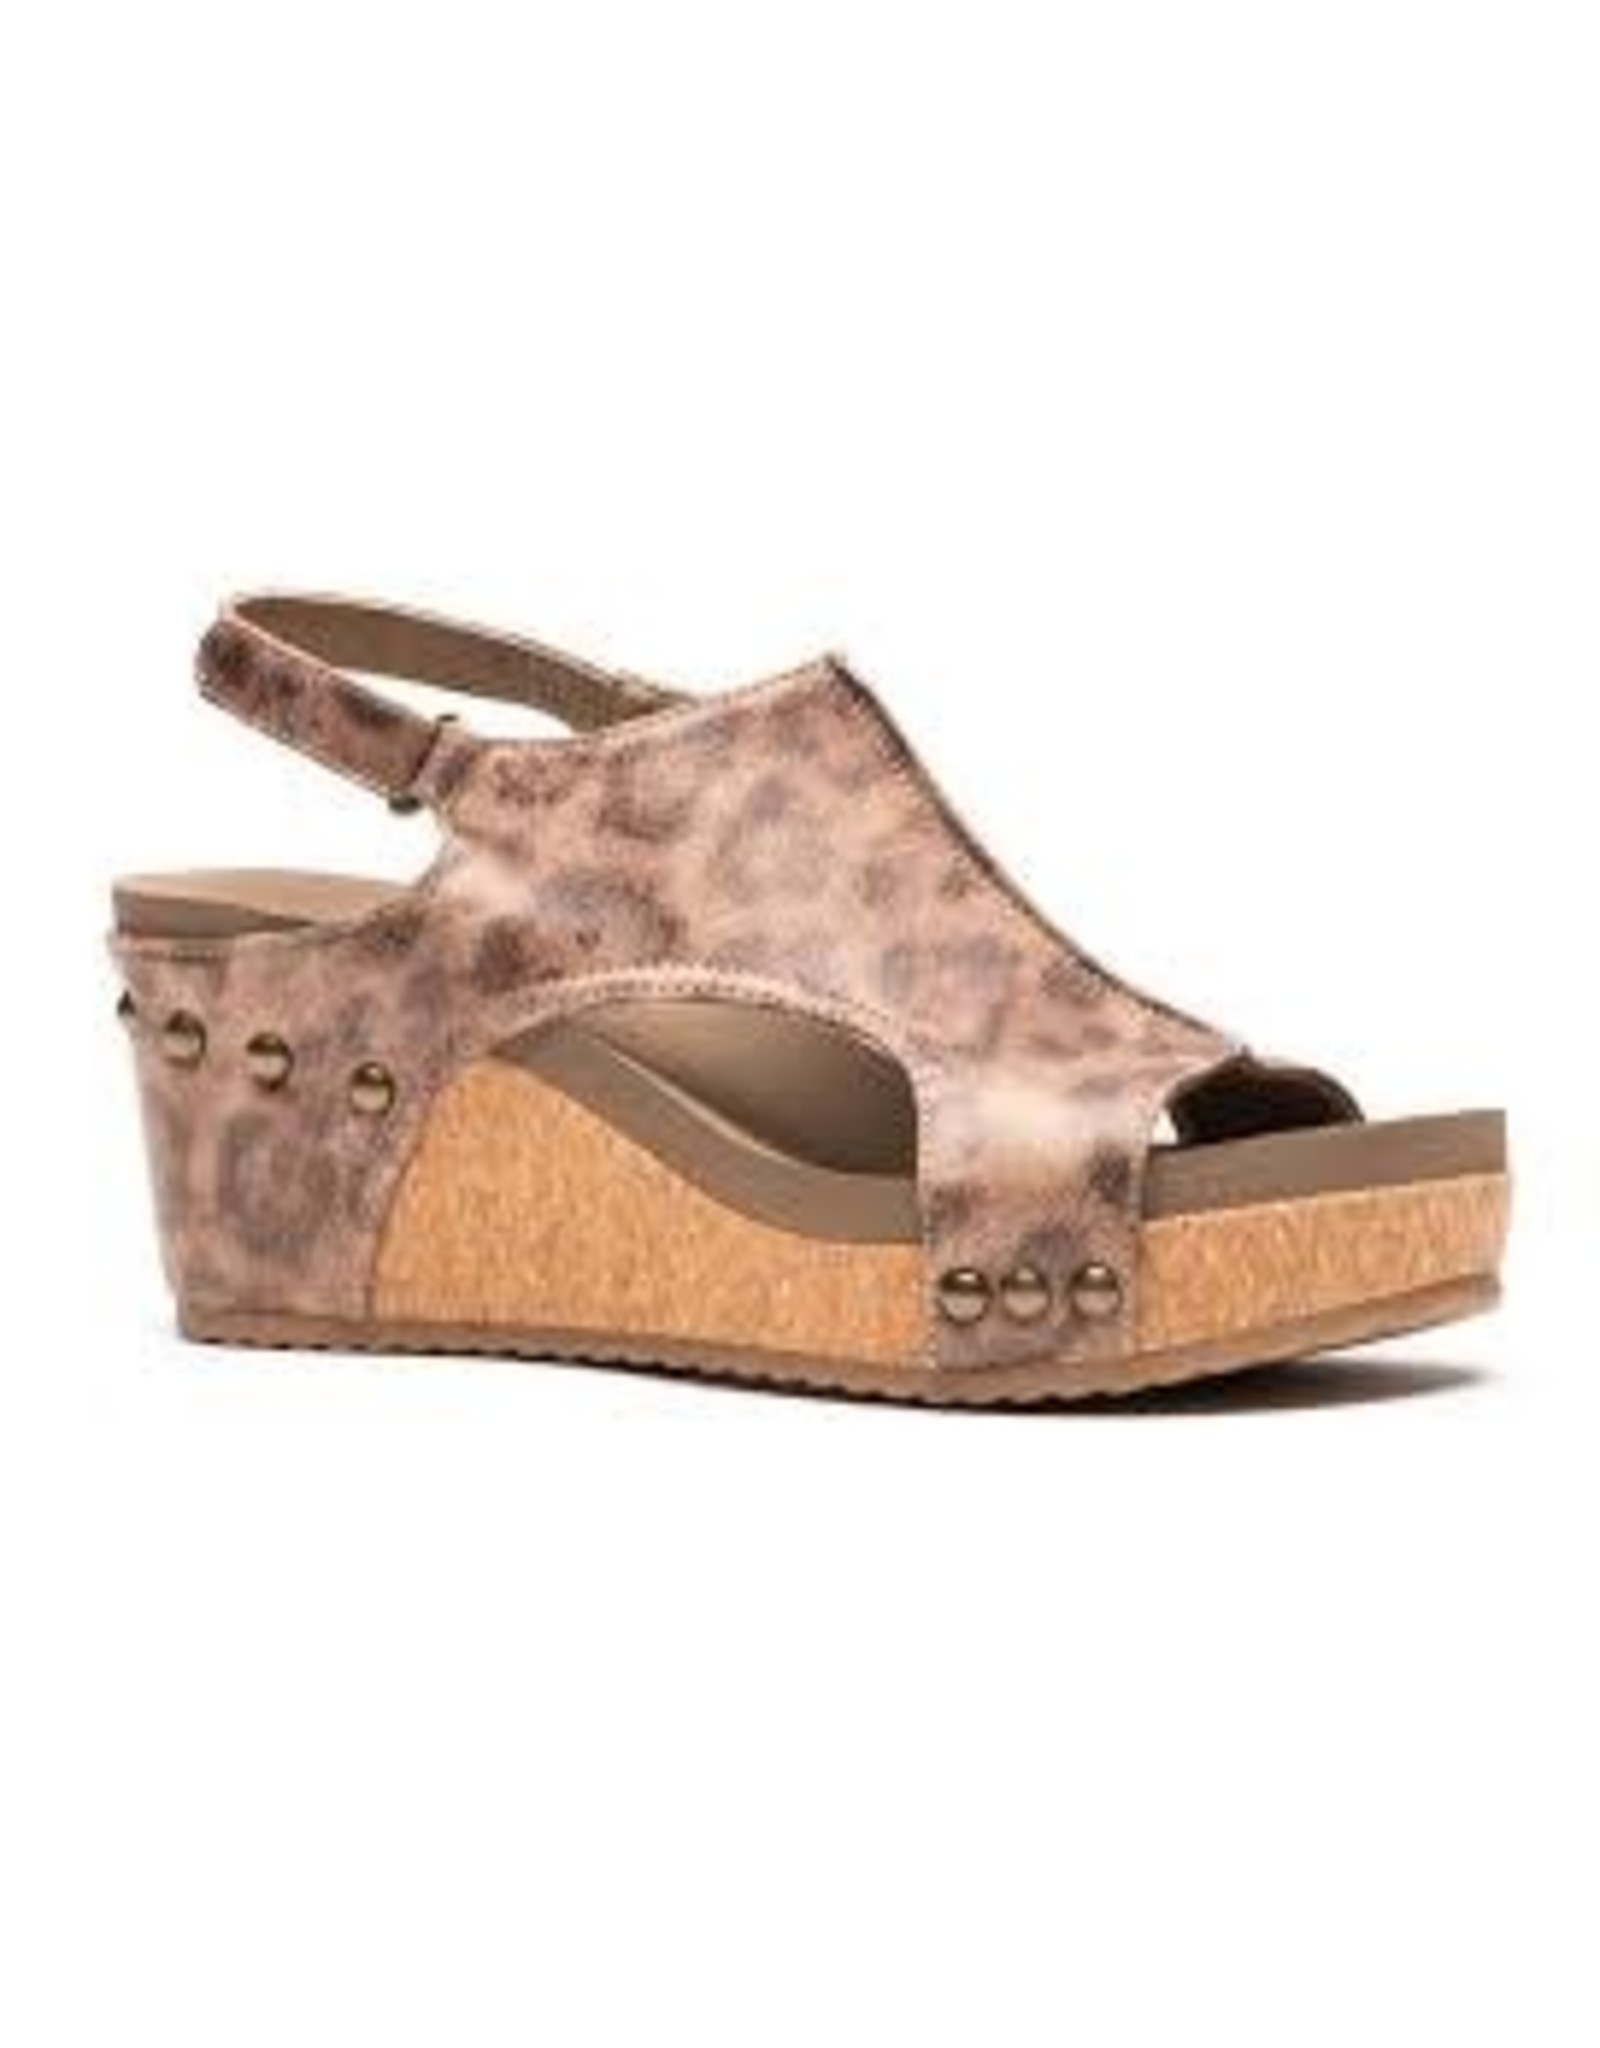 Corky's Carley Brown Distressed-8